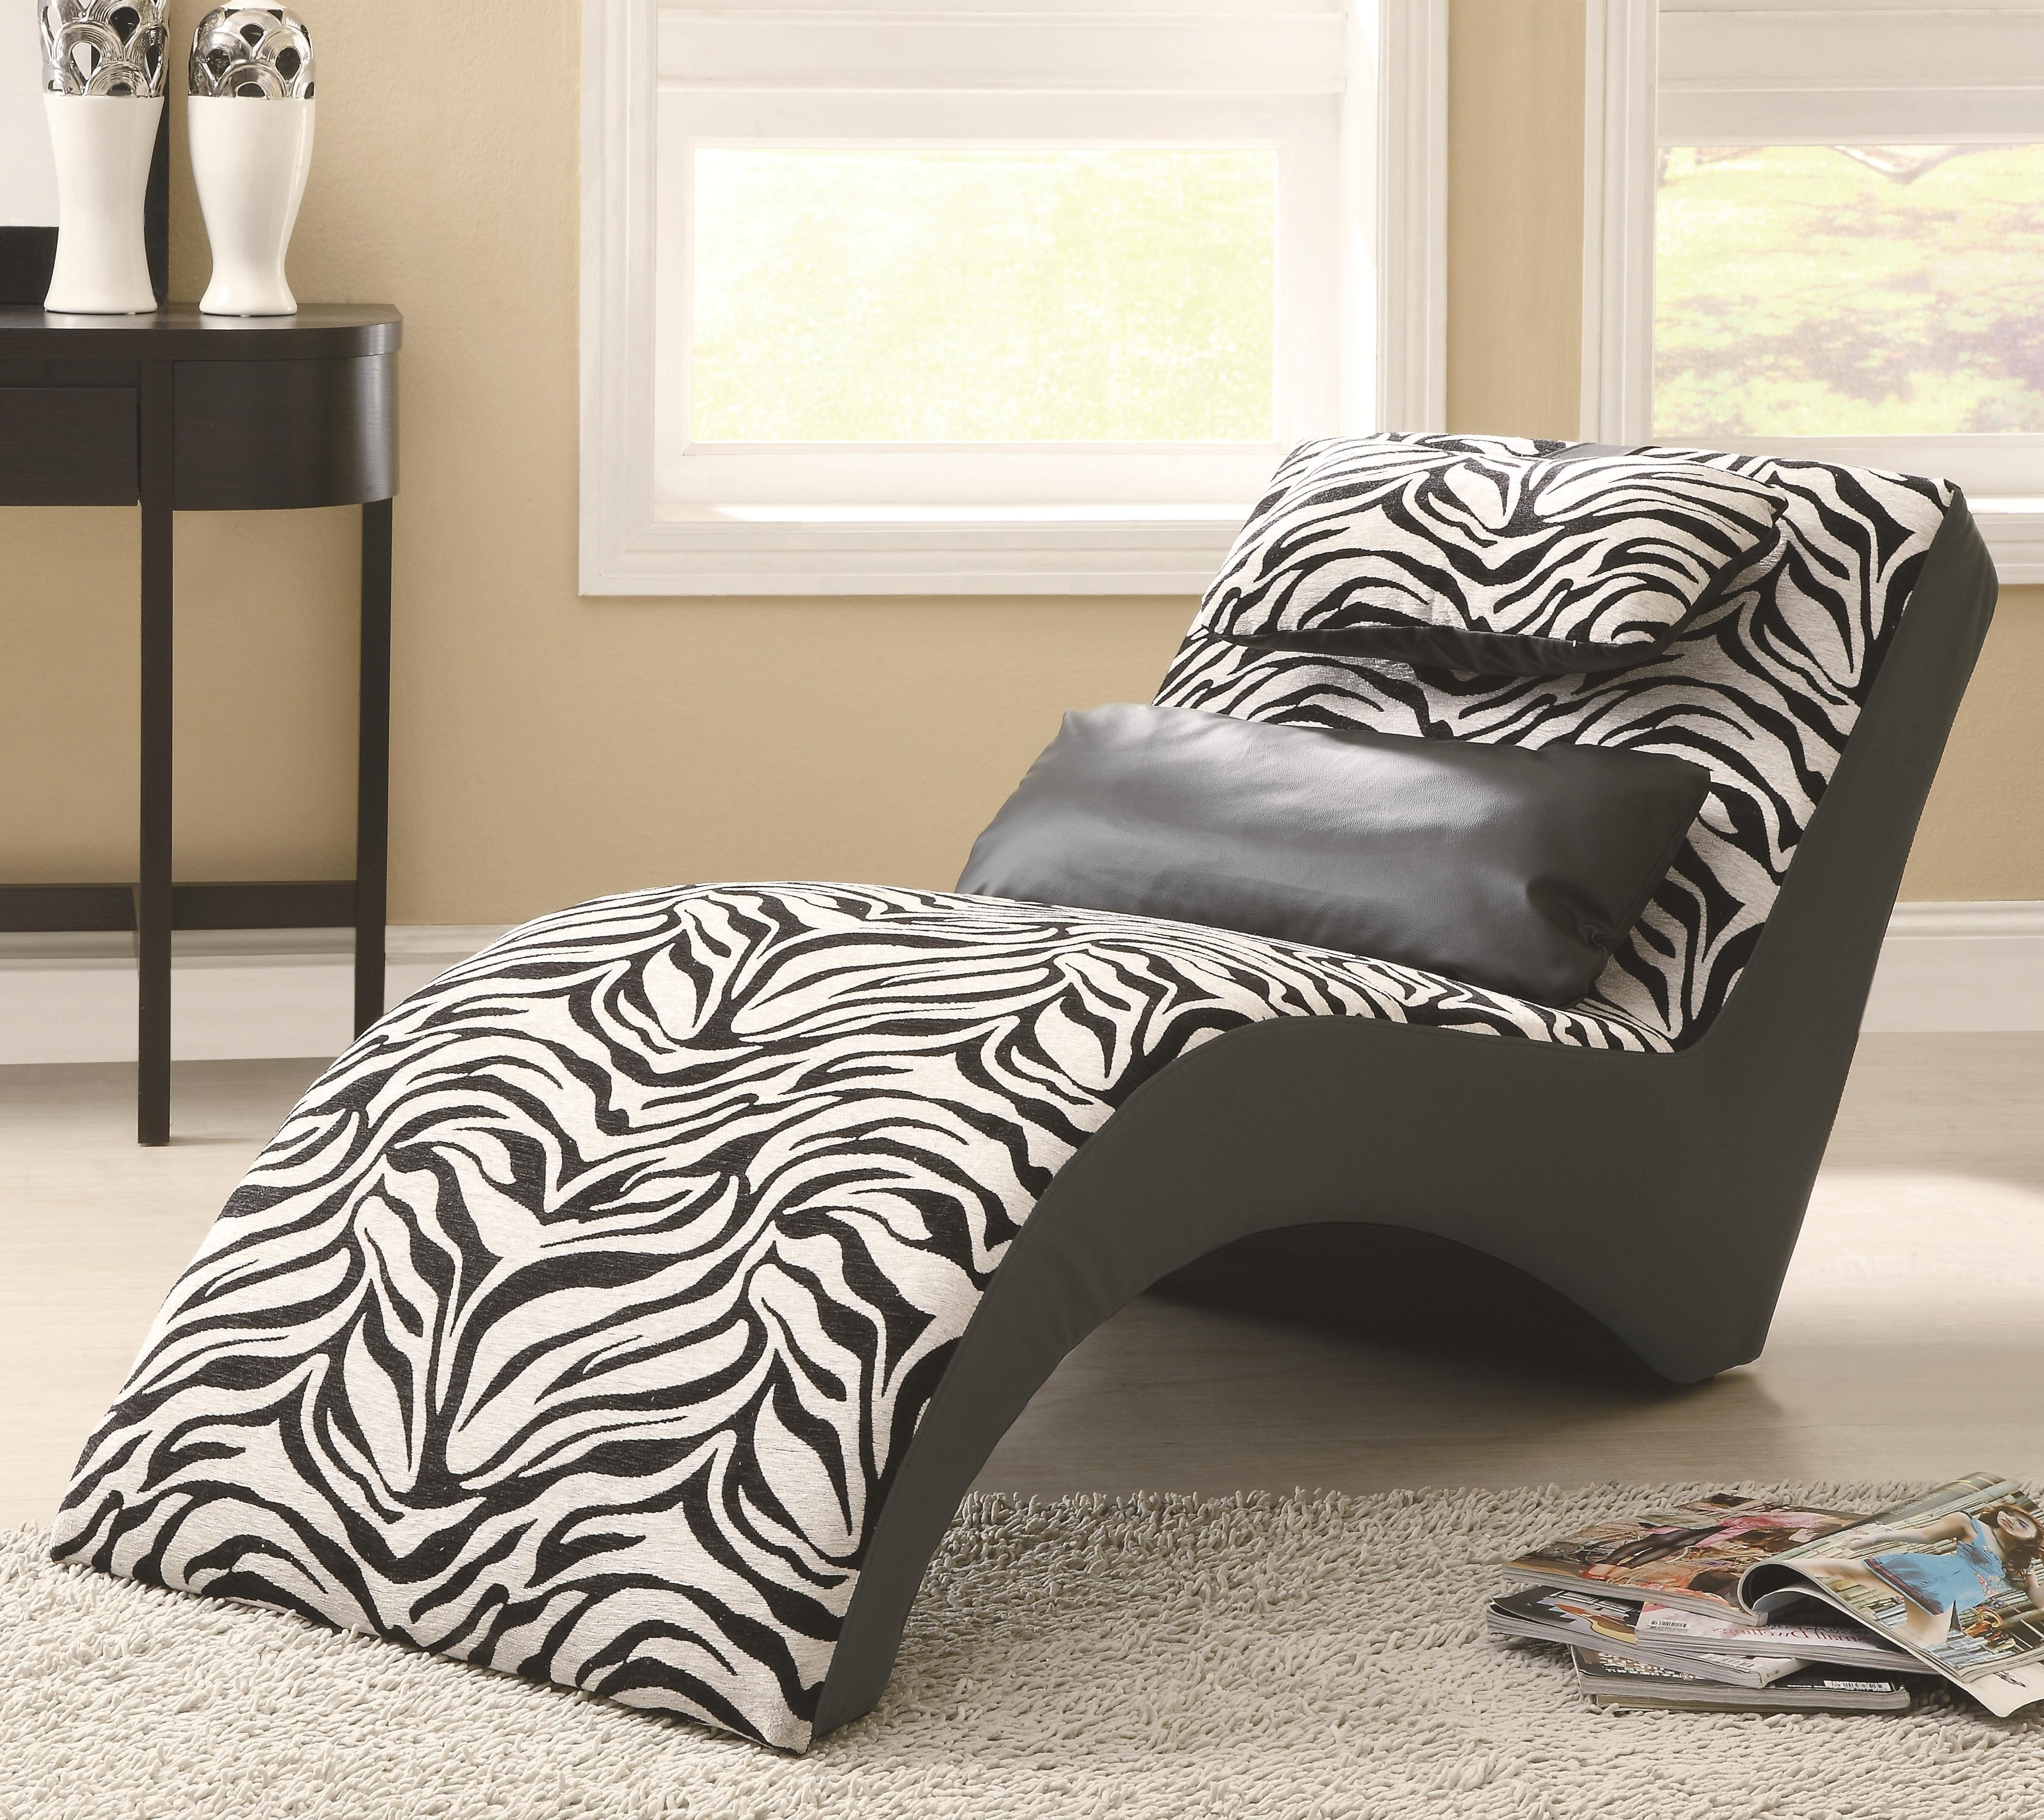 Zebra Print Chaise Lounge Chairs Within Latest Furniture : Modern Zebra Print Modern Lounge Chair Near Black (View 15 of 15)